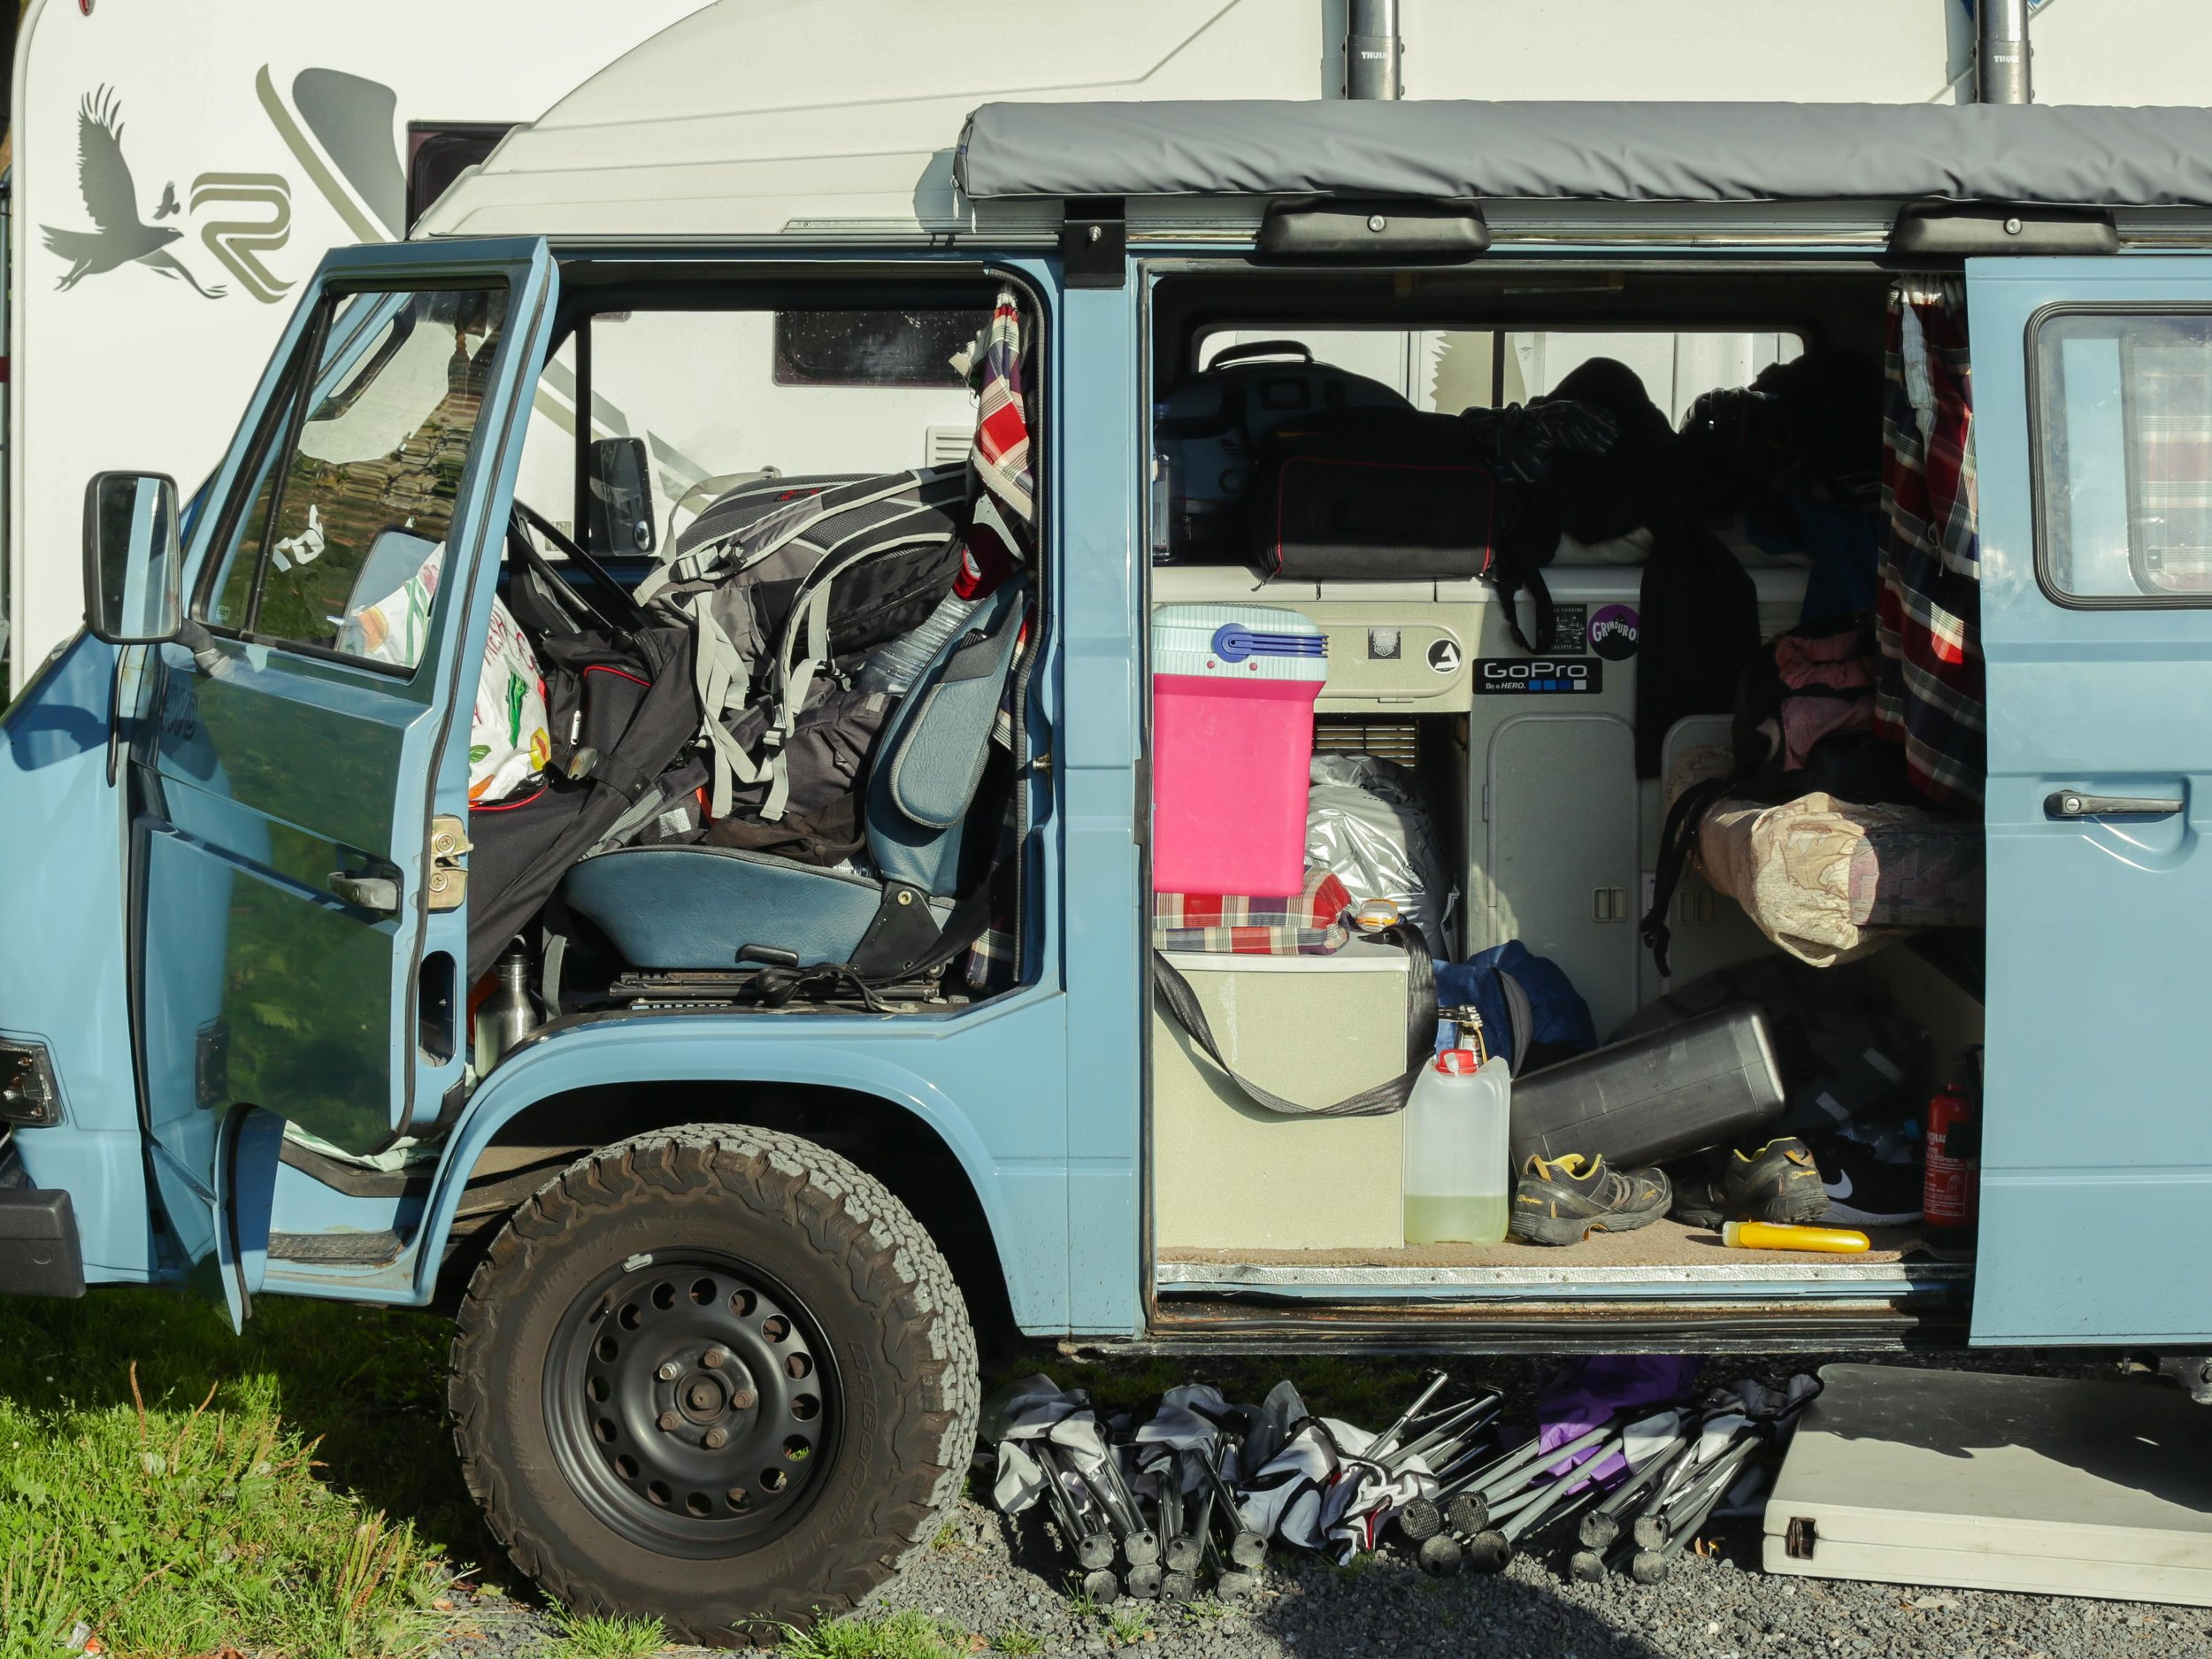 vanlife, vw, vw t3, vanagon, vanagon life, van life, vw syncro, vw t3 syncro, vw t25, vw t25 syncro, vw bus, jack mac, jack mac adventure photographer, bicycle touring apocalypse, syncro, overland blog, kayaking, bikepacking, adventure cycling, berg eltz, berg eltz castle